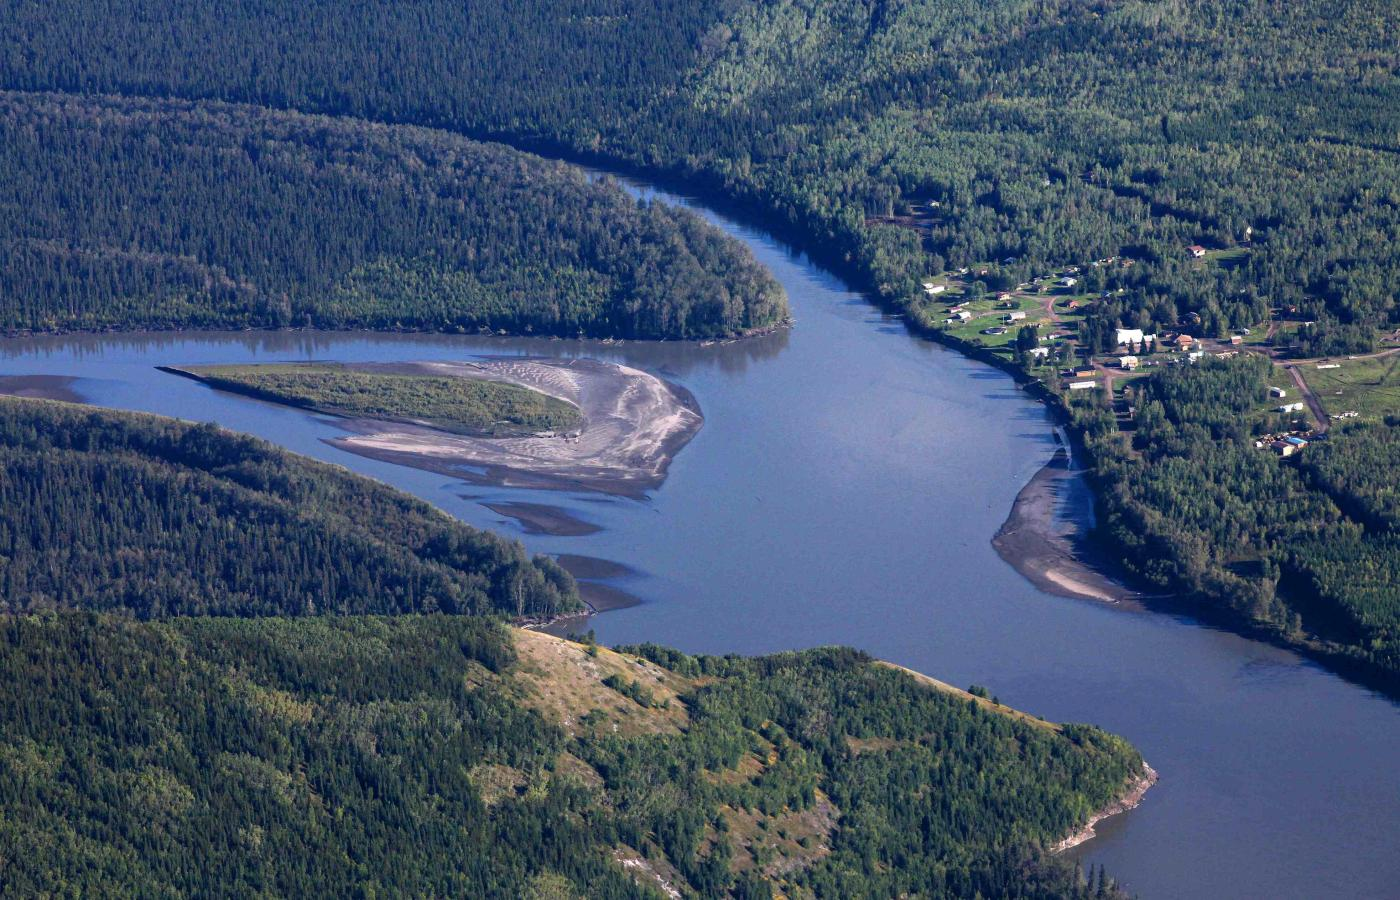 An aerial view of the community of Nahanni Butte along the Nahanni river in the spectacular Northwest Territories